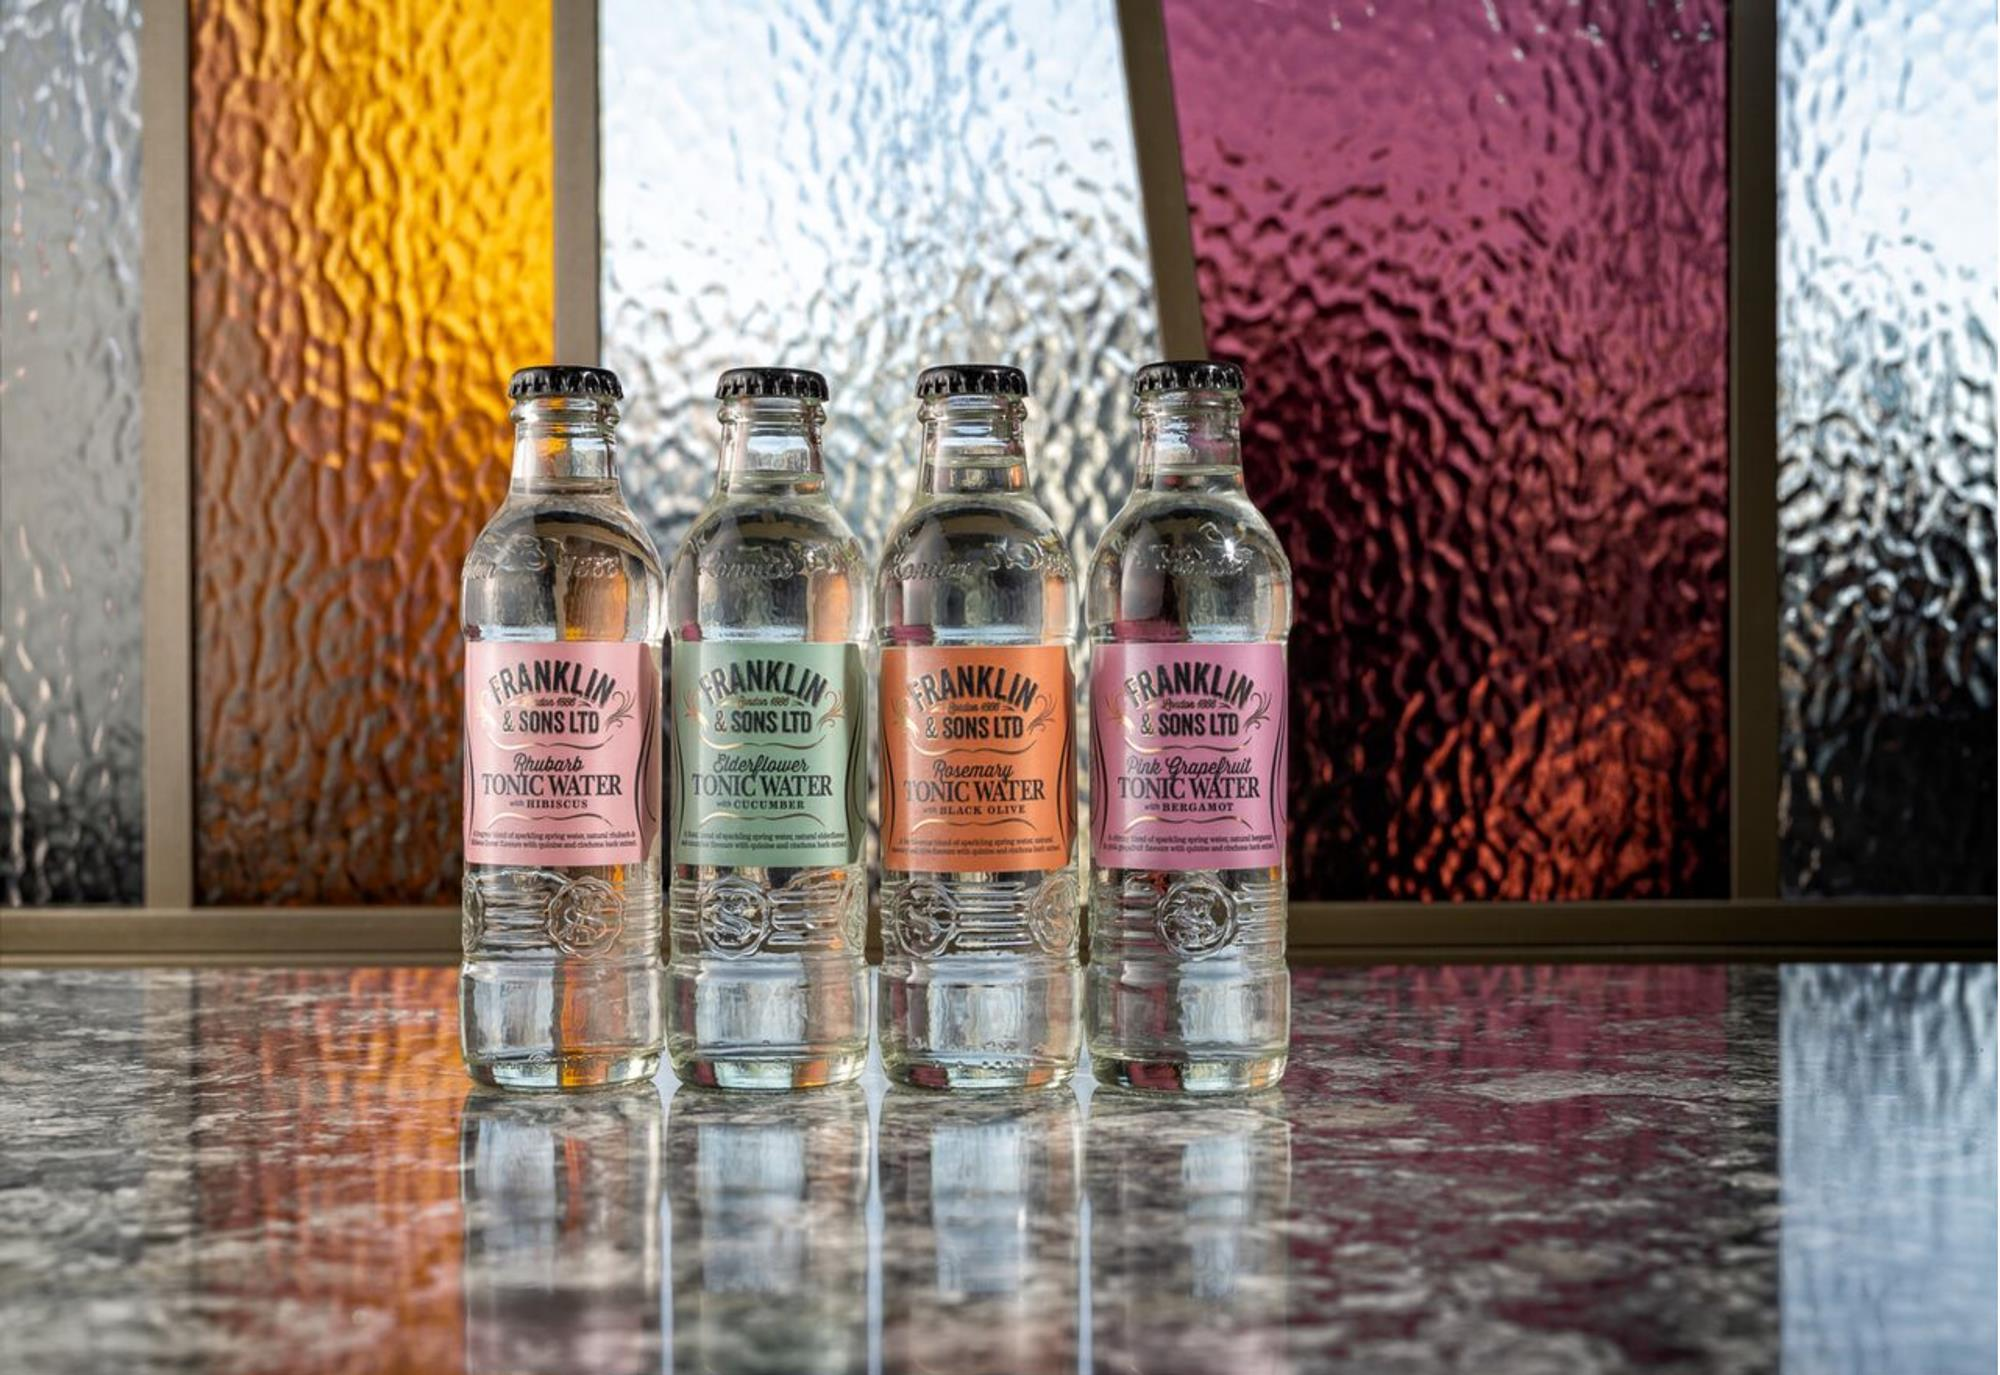 Franklin & Sons unveils dual flavoured tonic waters